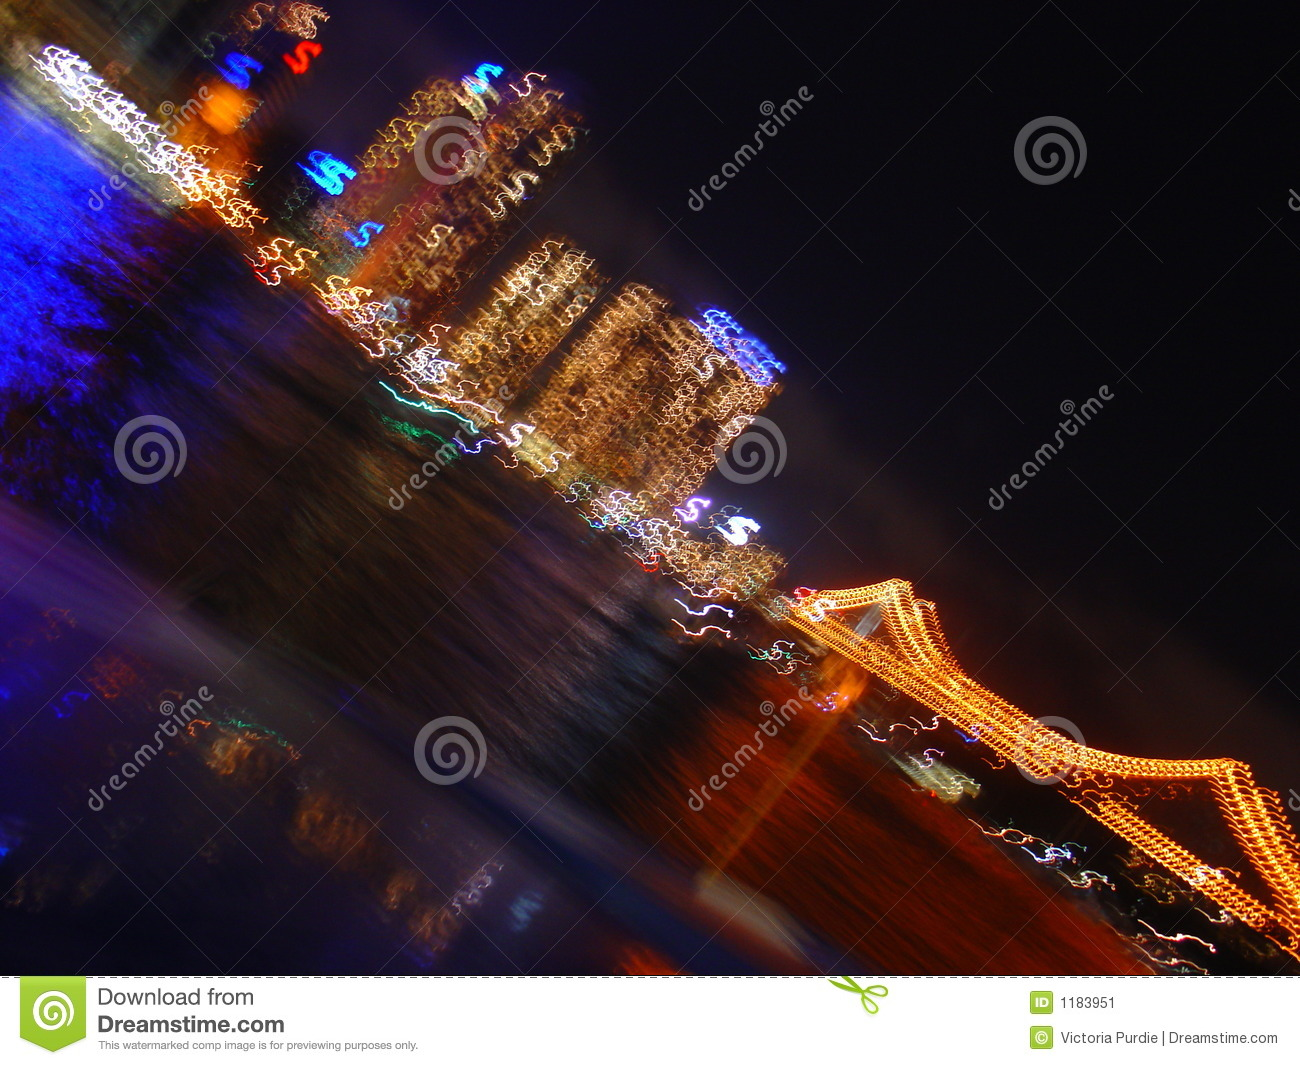 Abstract of City Lights